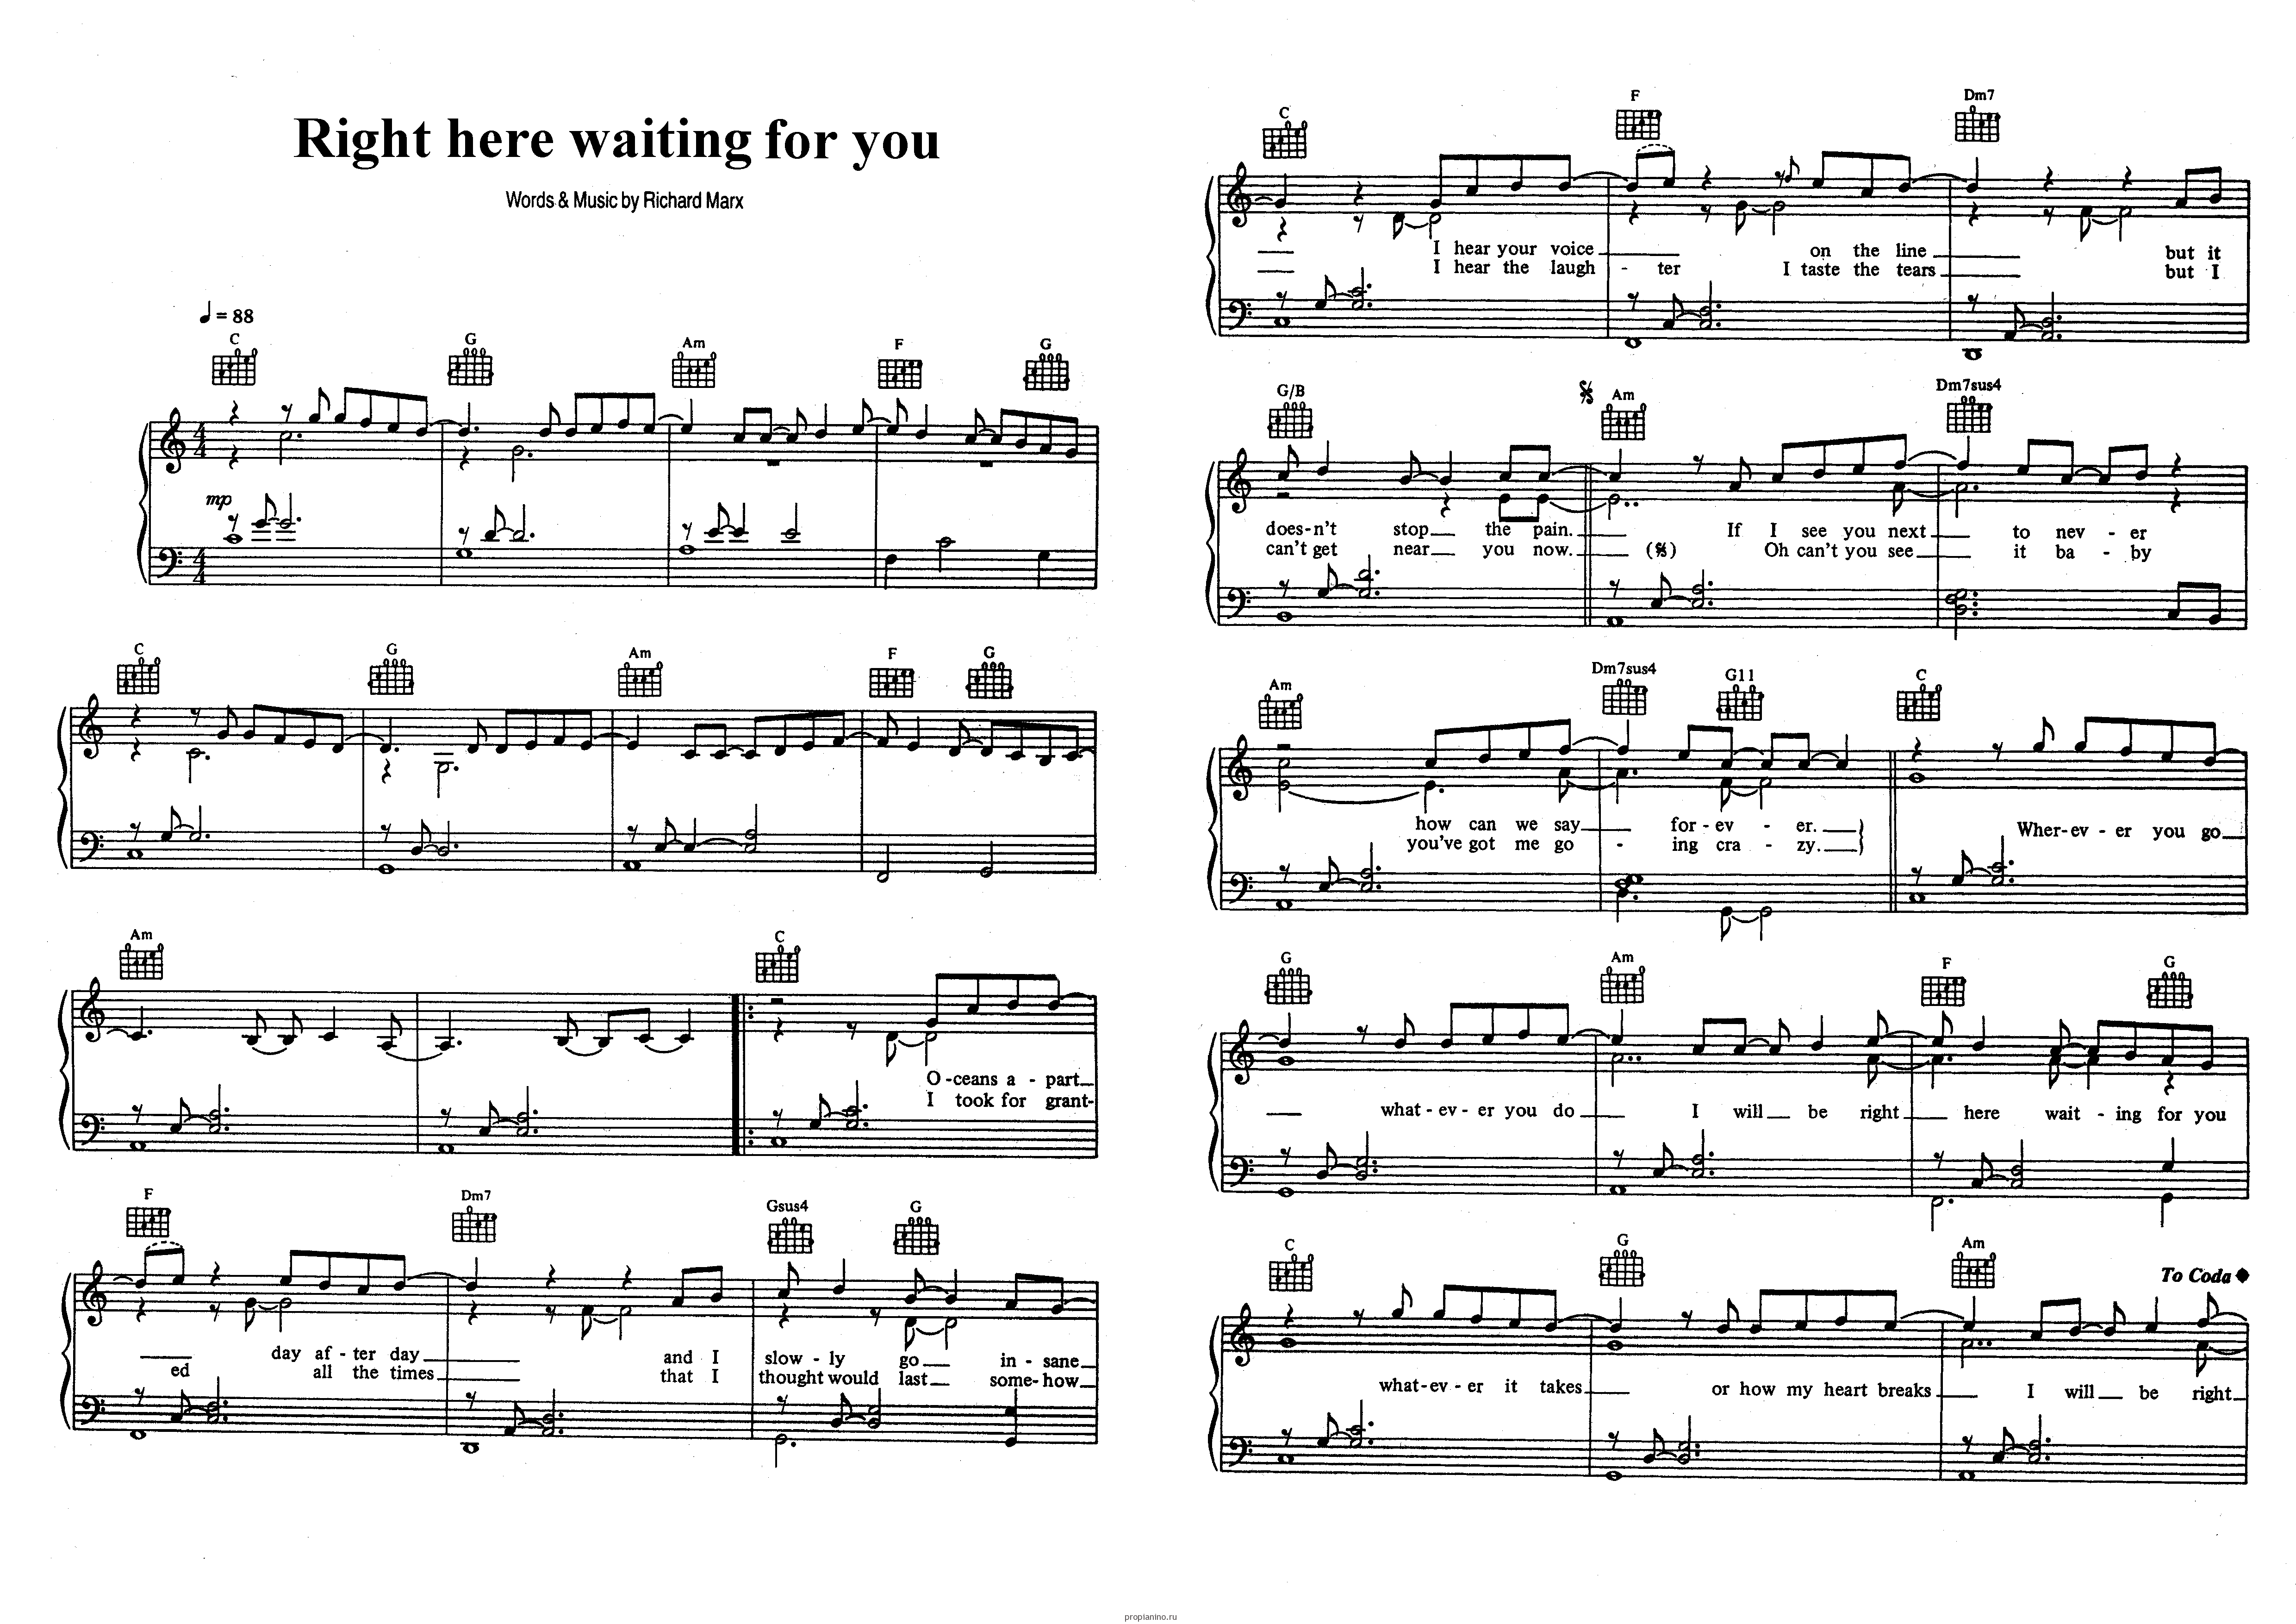 Guitar tabs of right here waiting